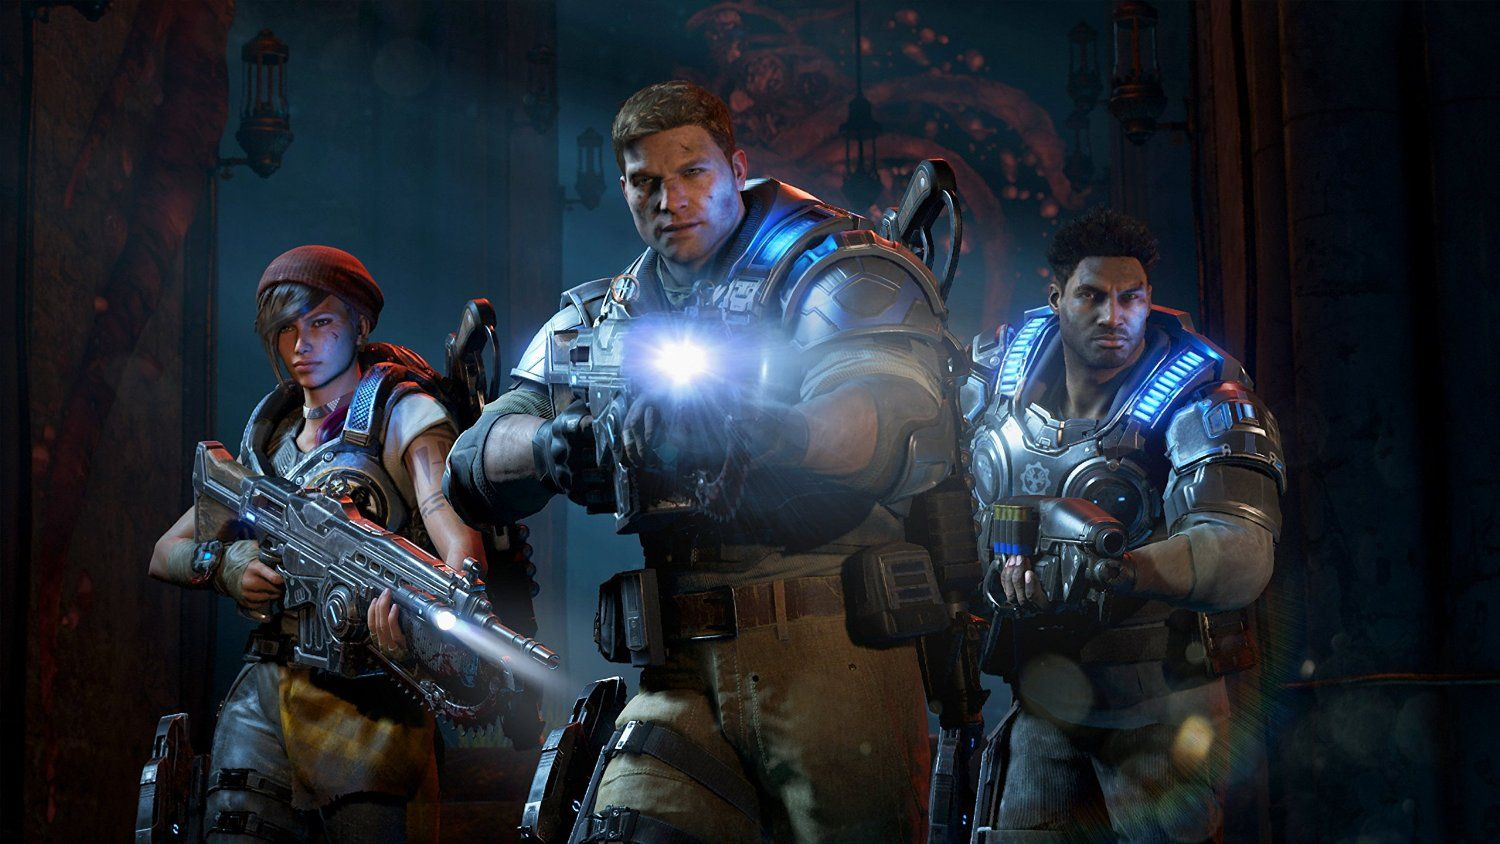 Gears of War 4 (Xbox One) - 11